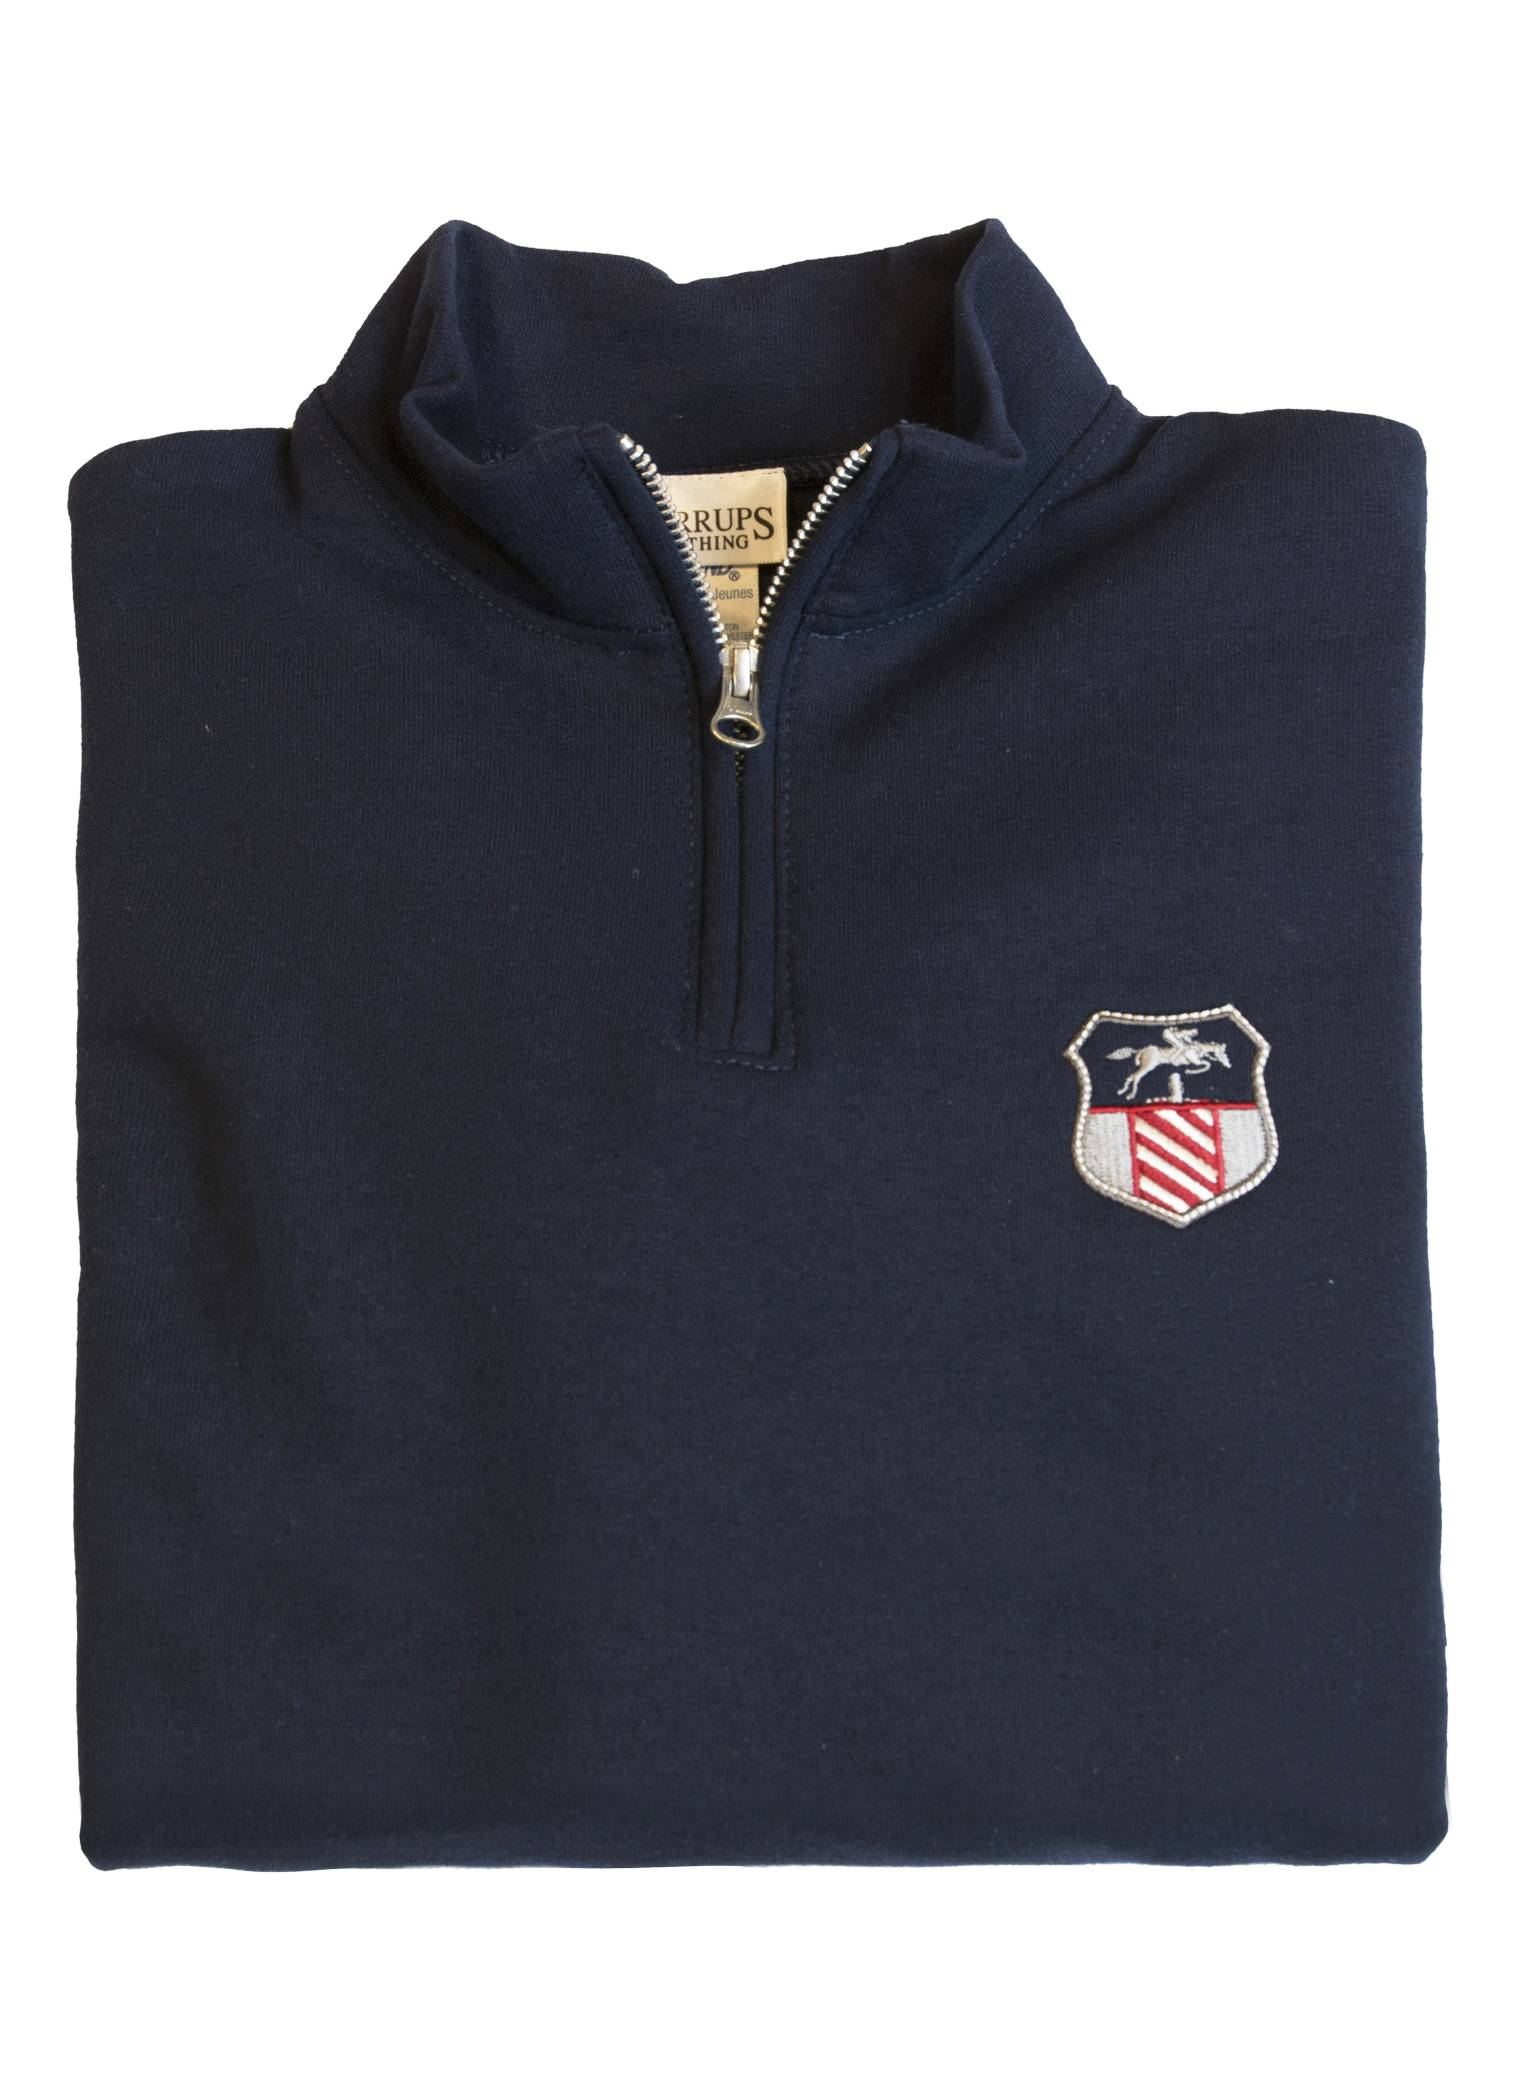 Stirrups 1/4 Zip Jumping Shield Embroidered Sweatshirt - Kids